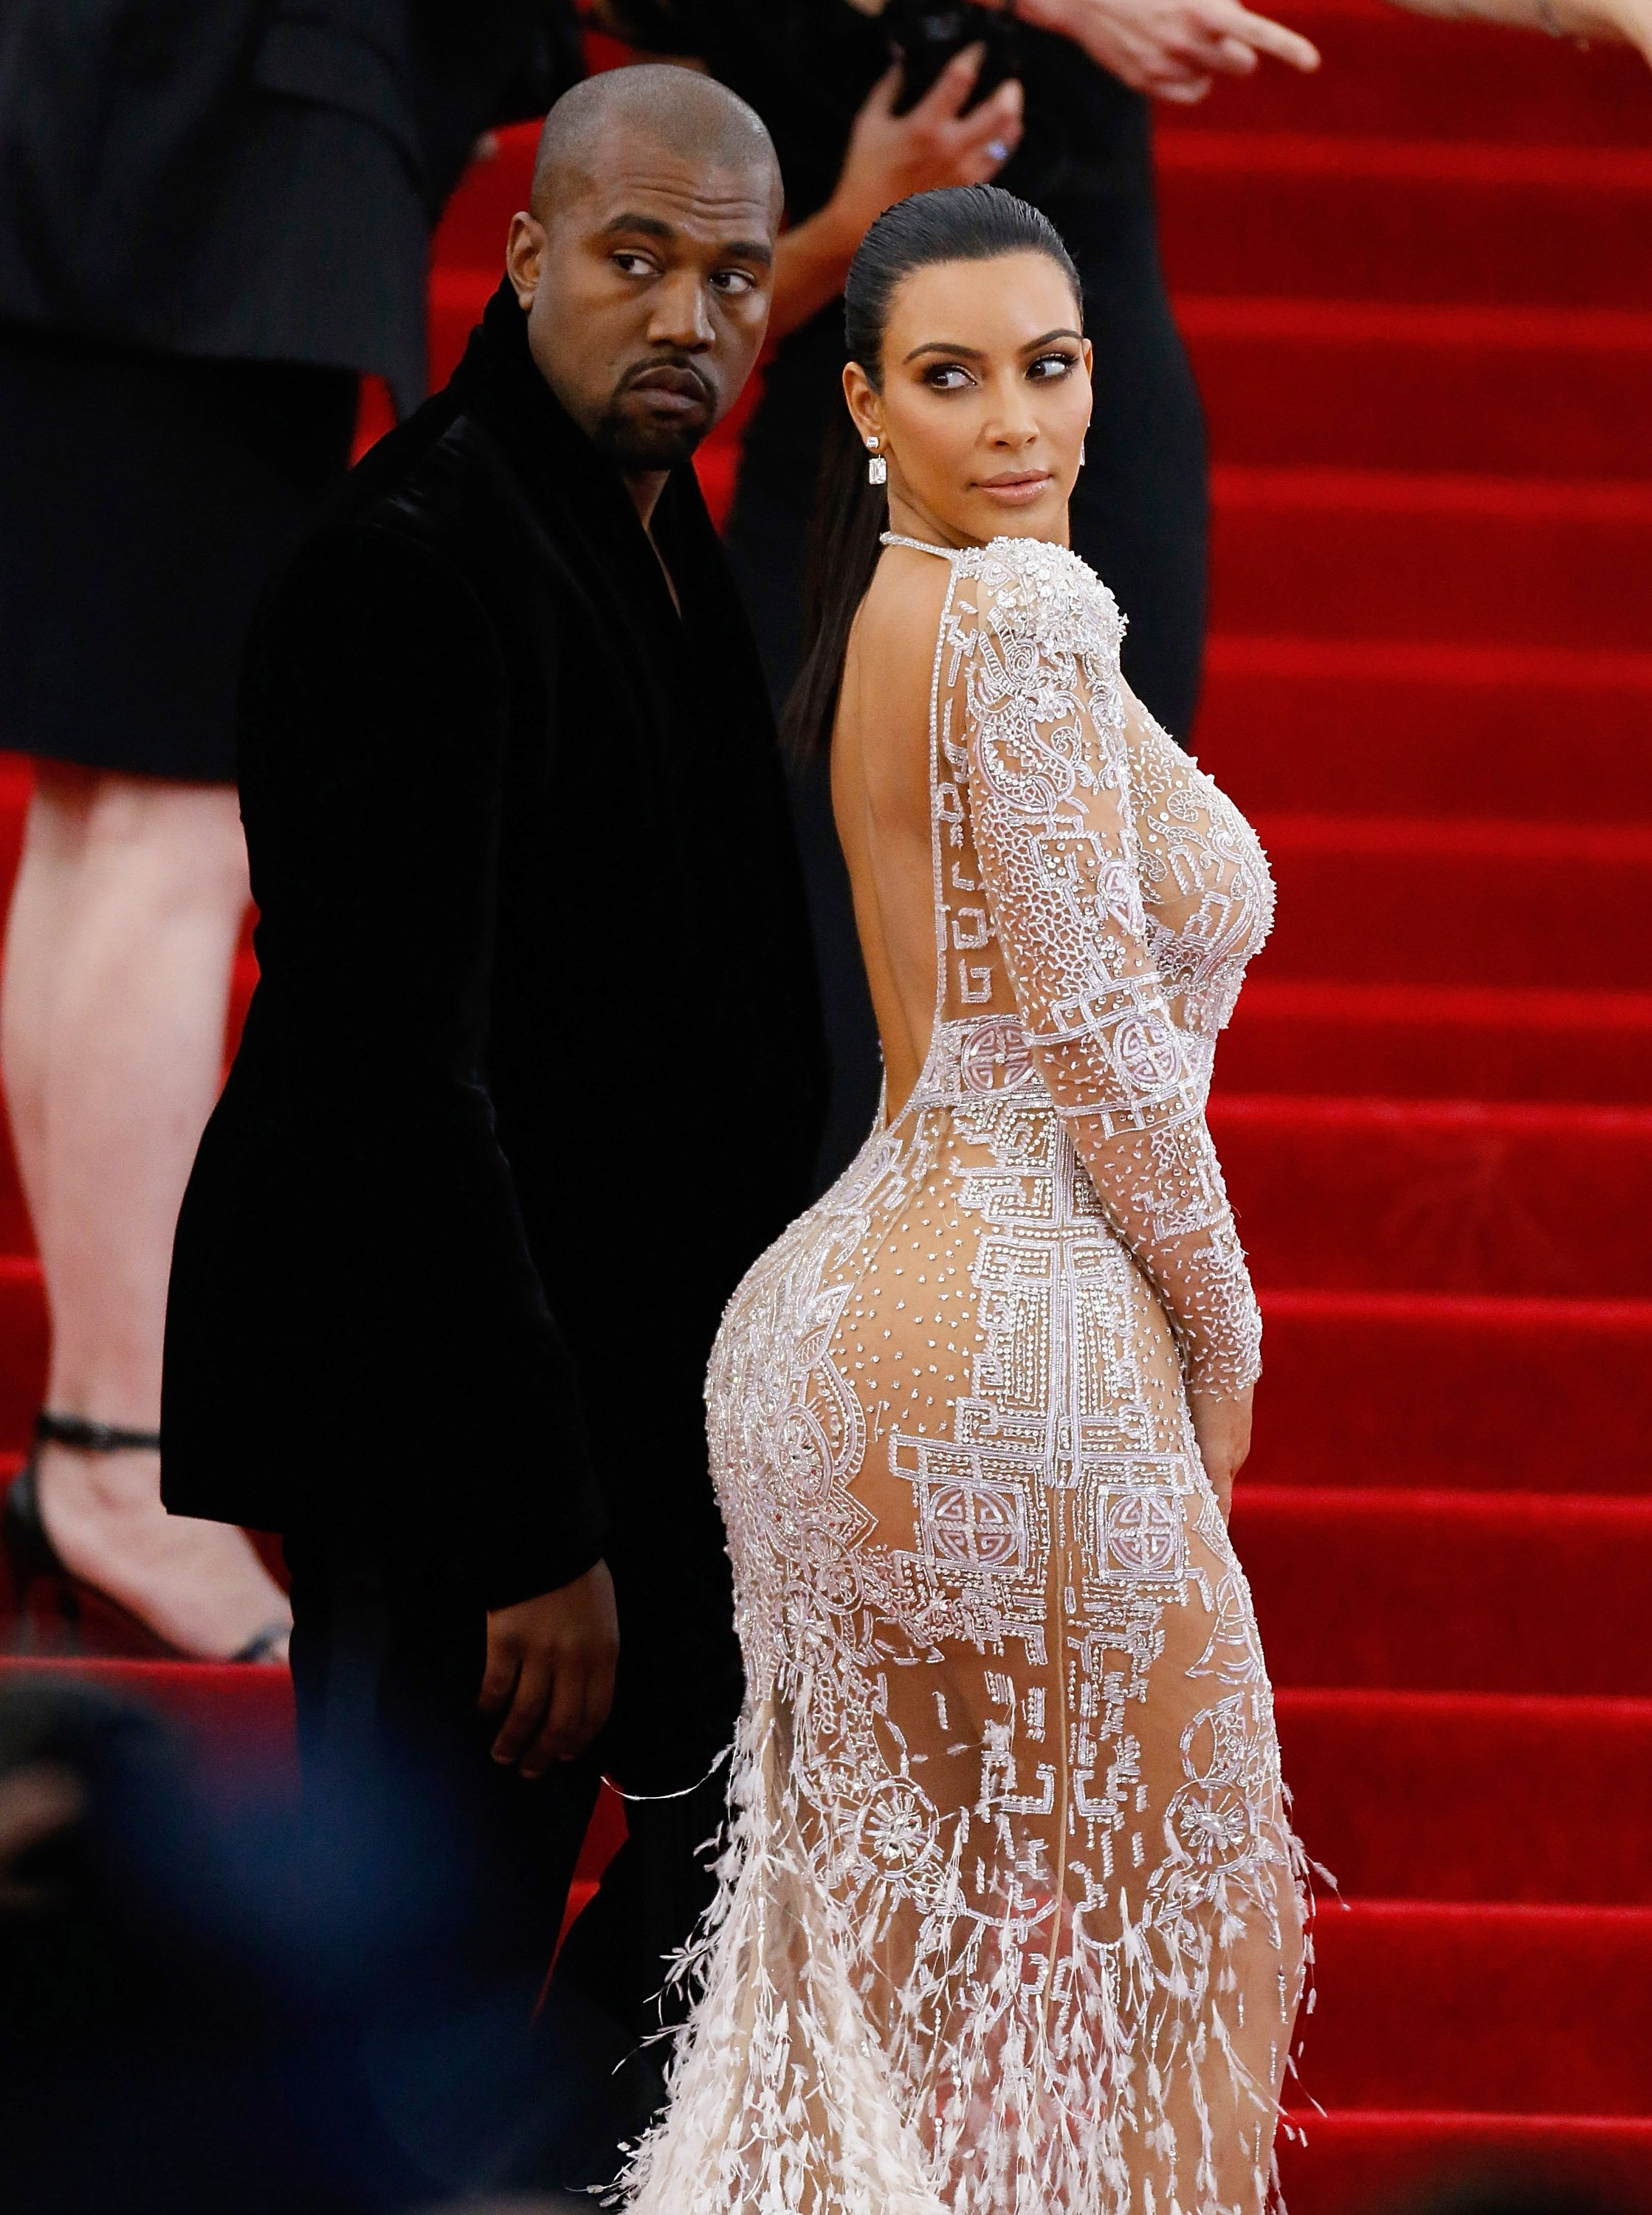 Kanye West & Kim Kardashian at the Met Gala on May 4, 2015 in New York City | Photo: Getty Images